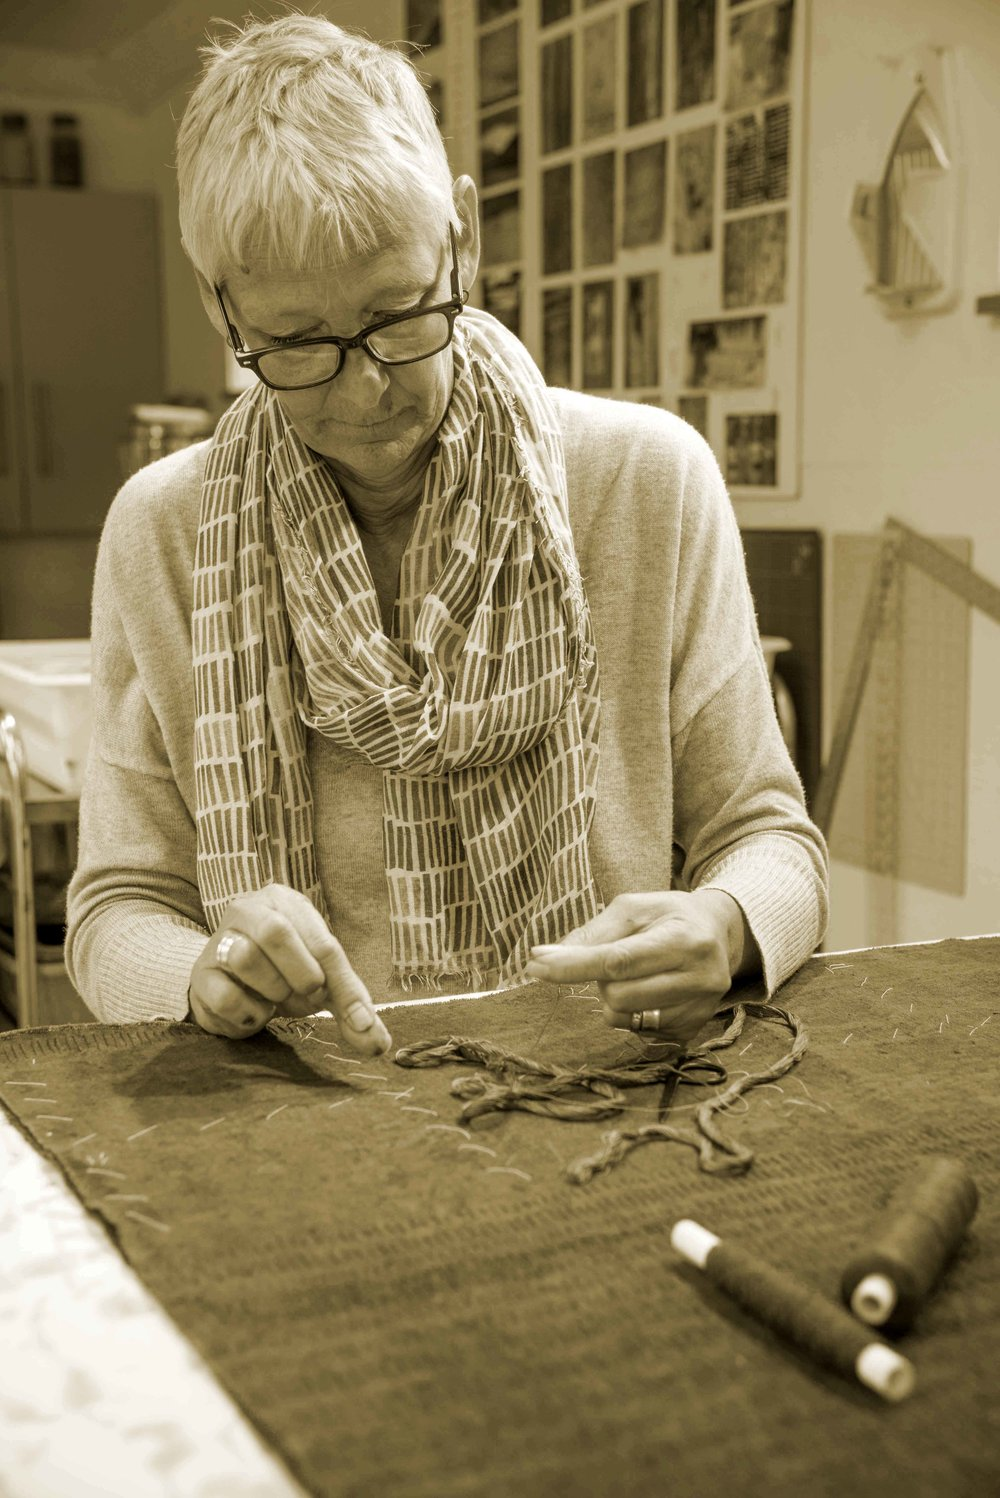 Claire Benn making textile art 6006.jpg